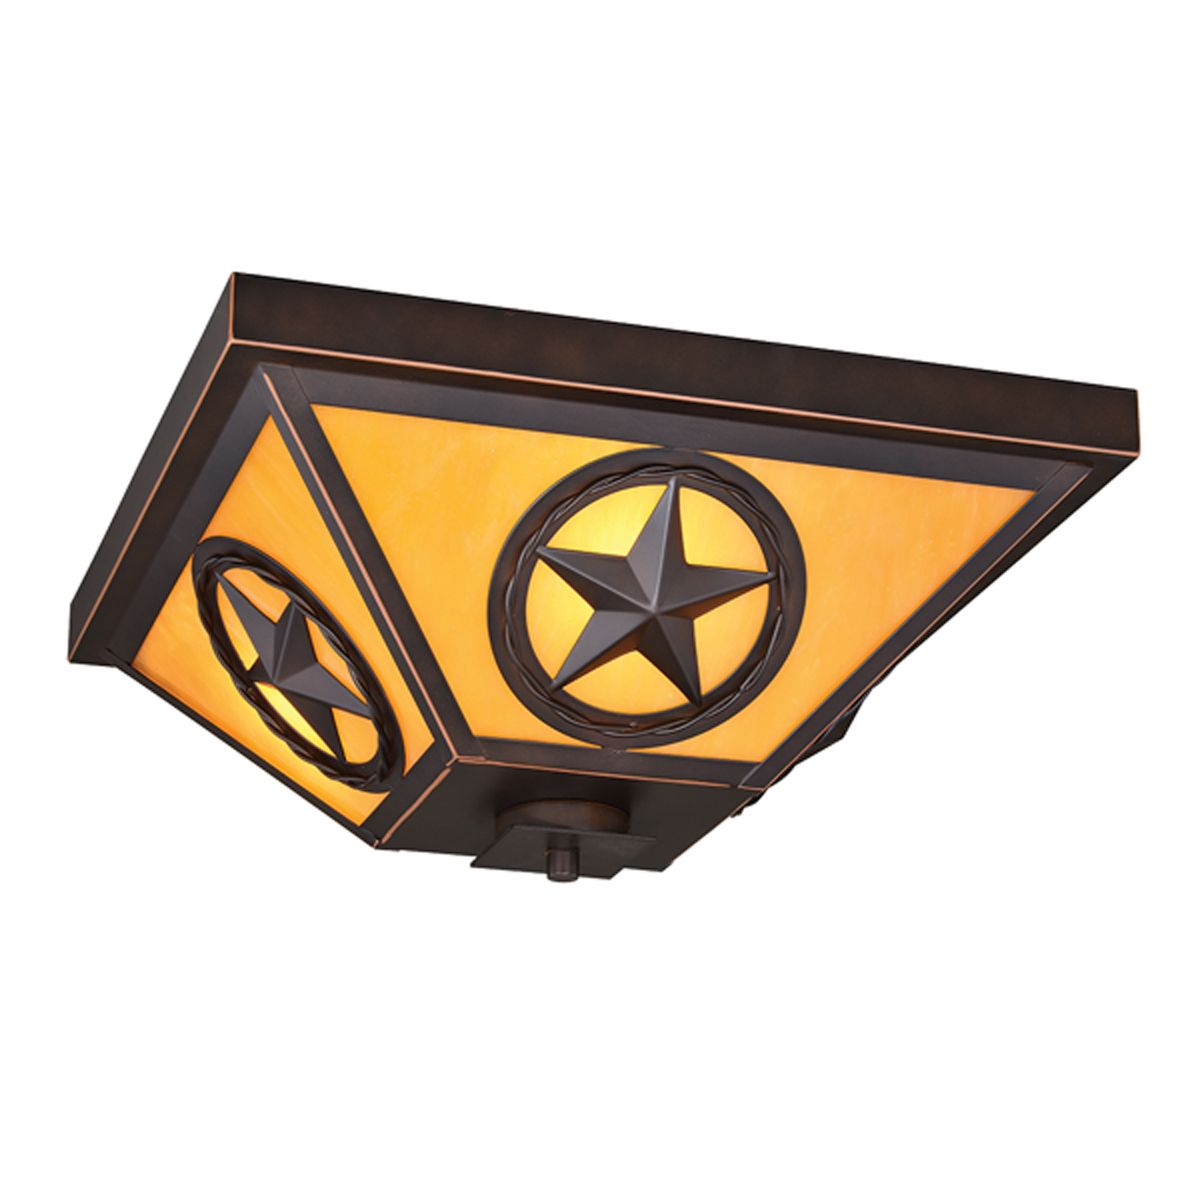 Lone Star�Flush Mount Ceiling Light